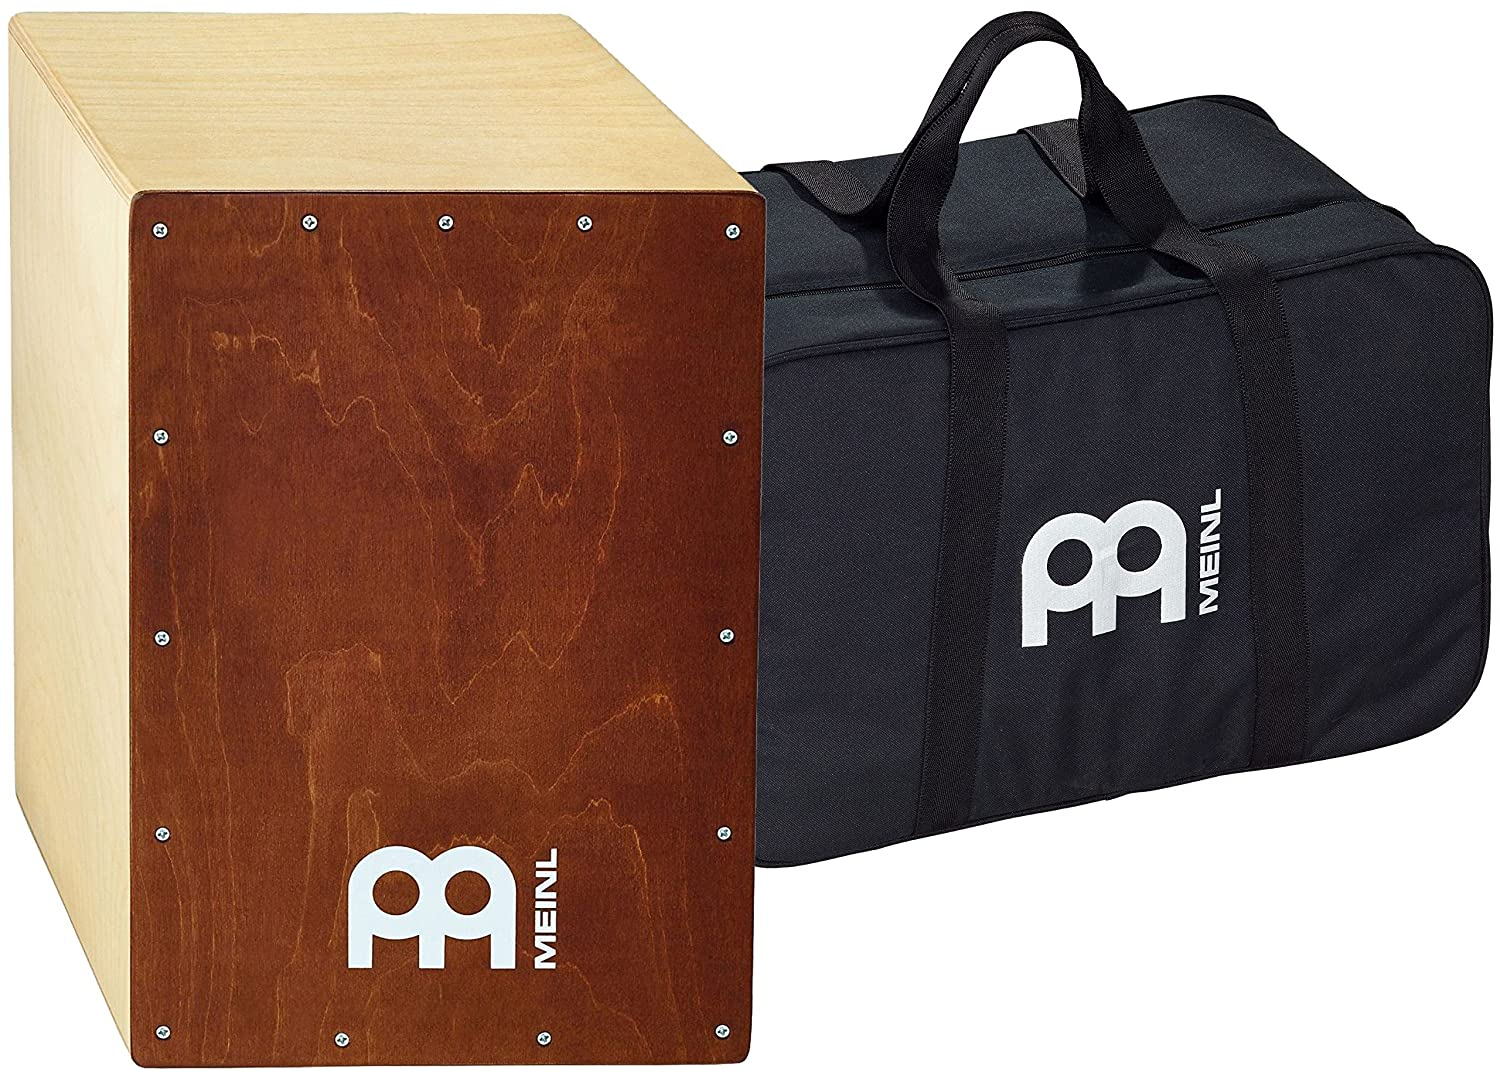 Meinl Percussion BCA1SNT-M Rubber Wood Bongo Cajon, Super Natural Finish (VIDEO) Meinl USA L.C.